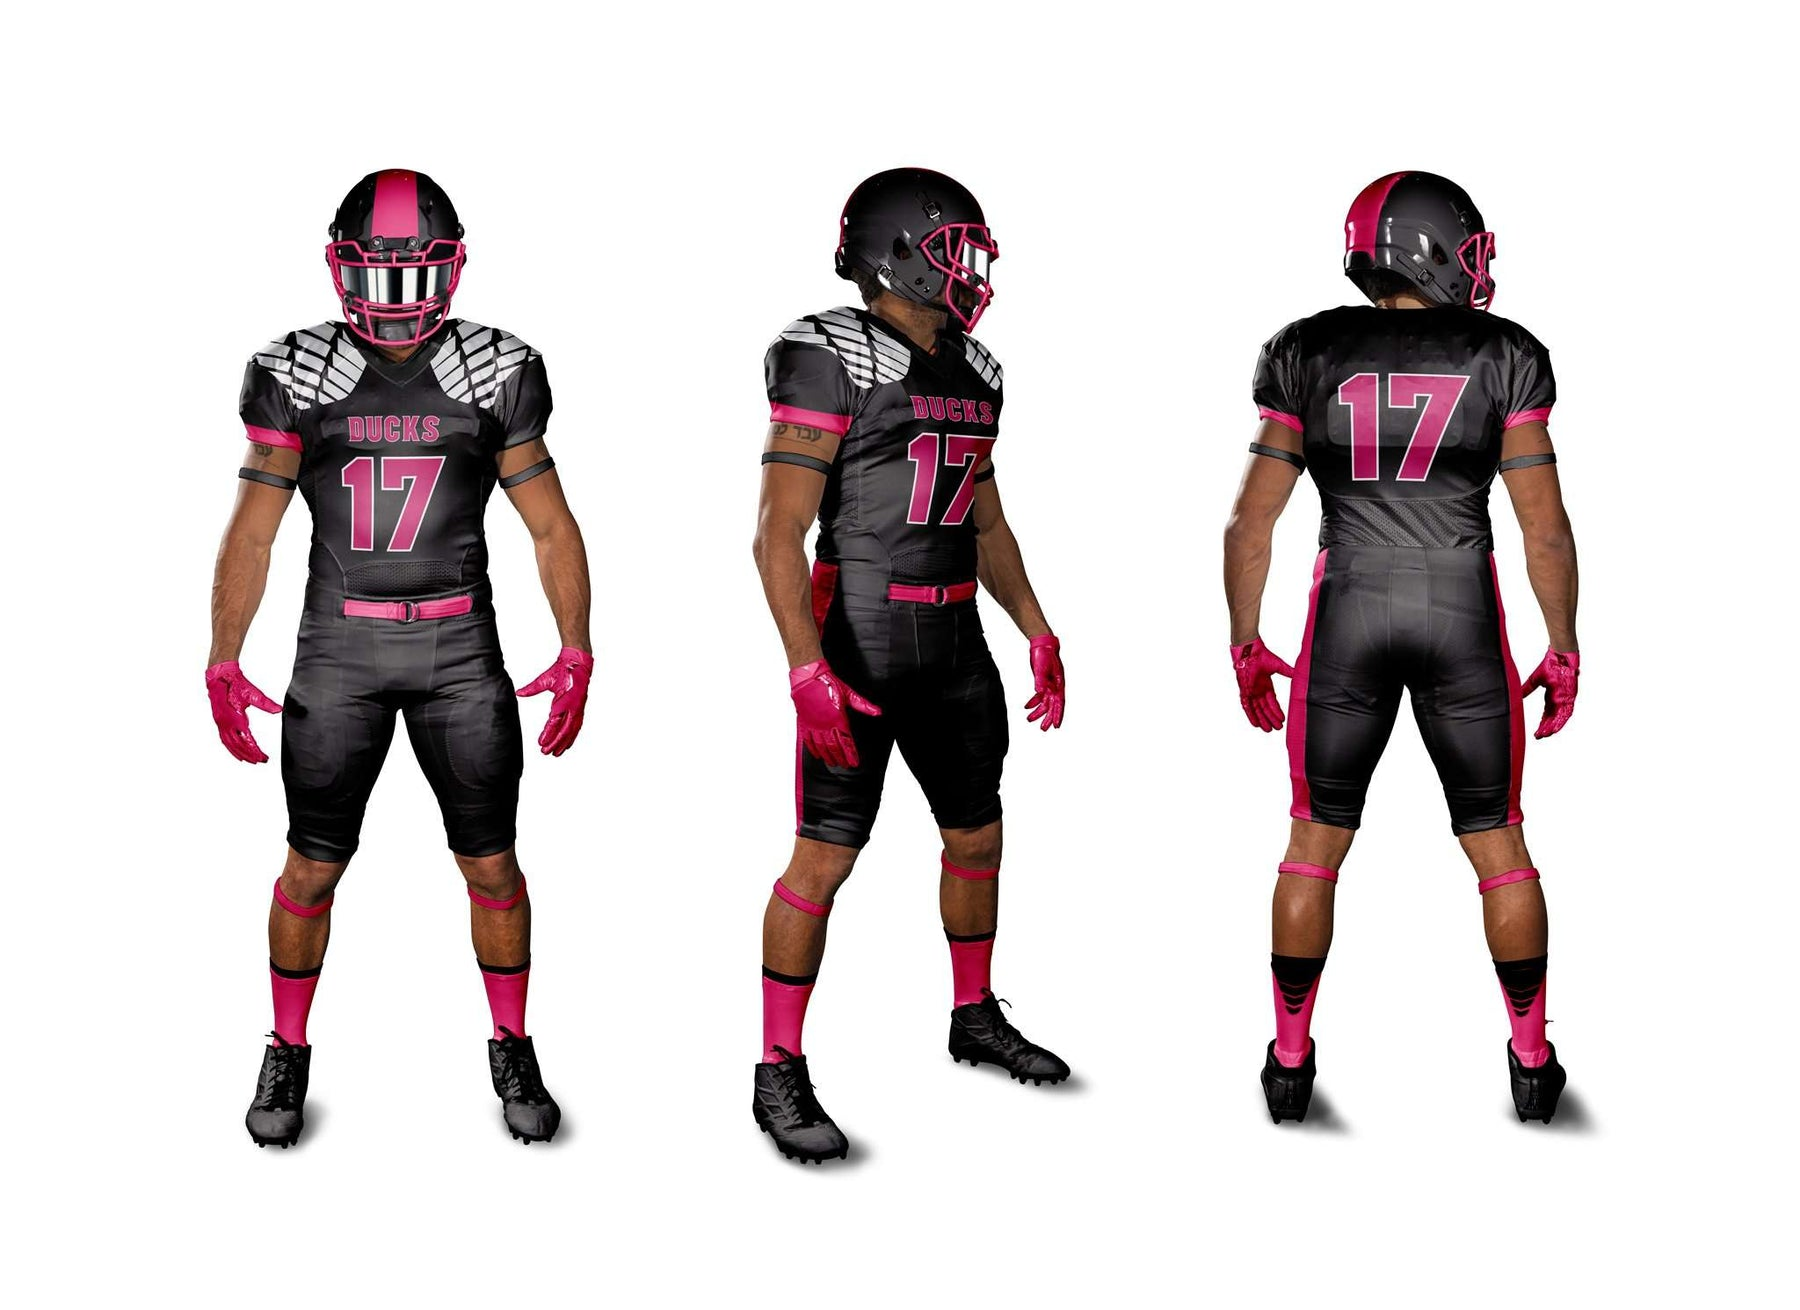 e2a92f705 Sublimated Breast Cancer Awareness Football Jersey – League Outfitters